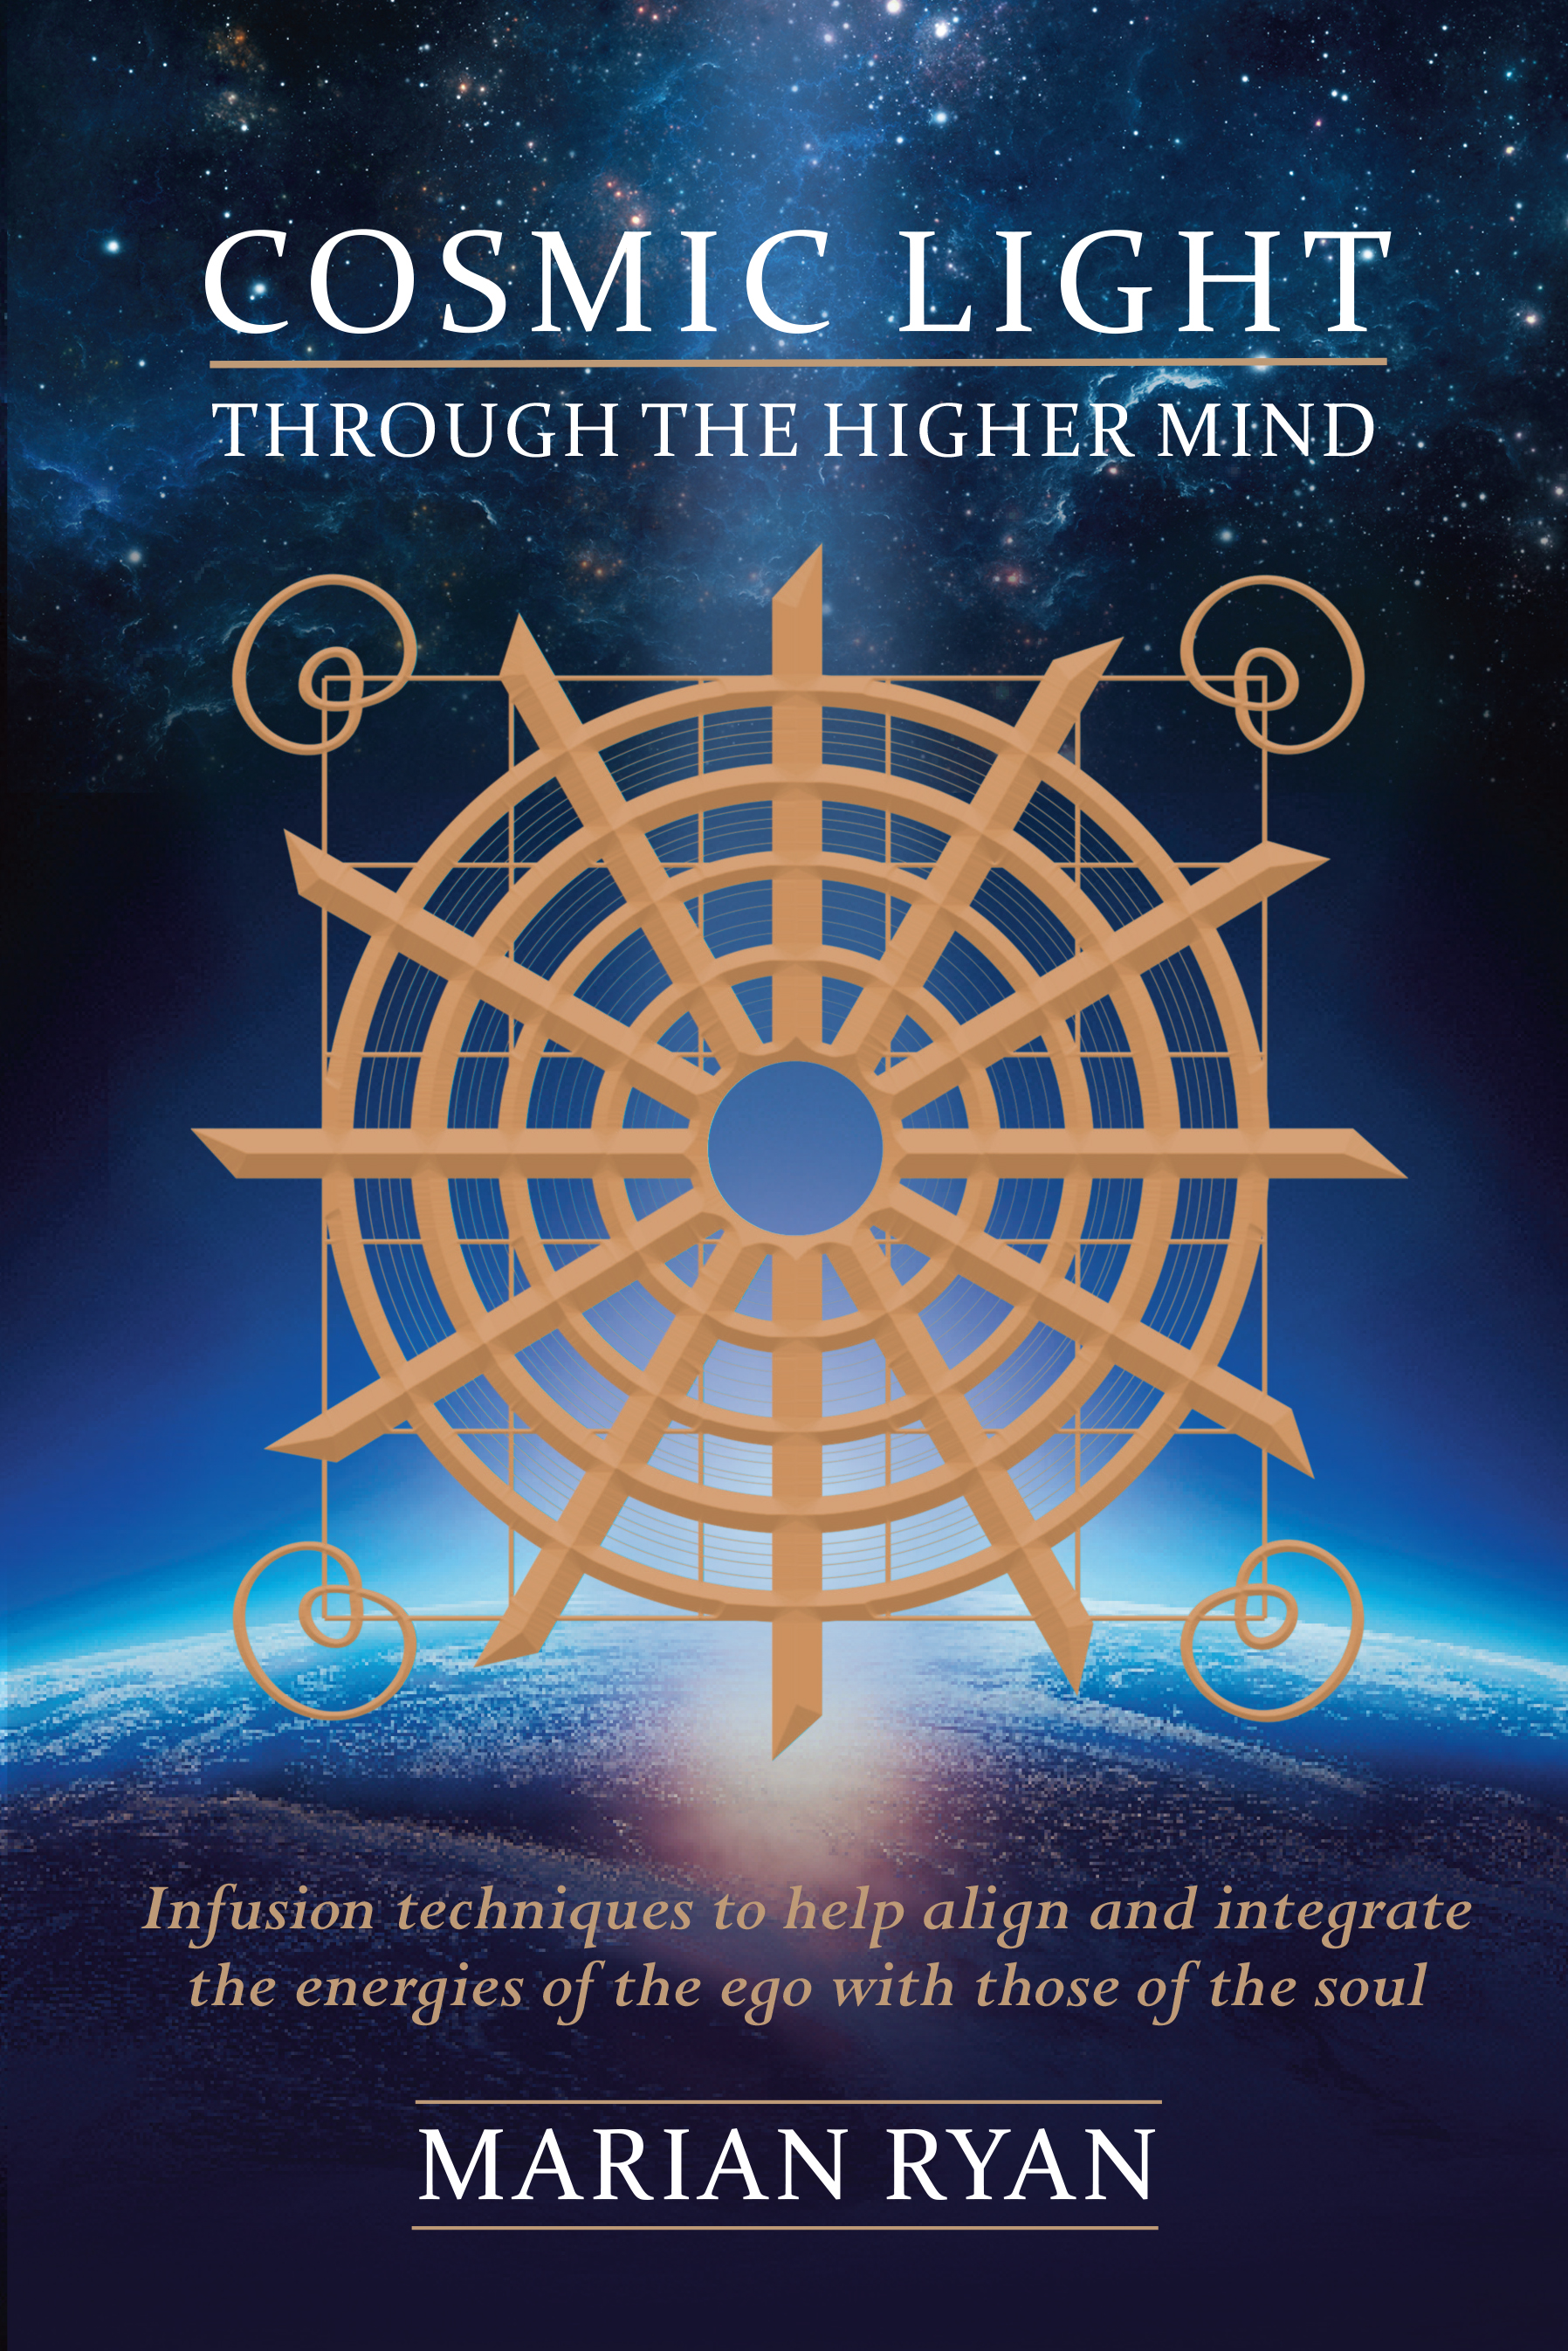 Cosmic Light: Through the Higher Mind